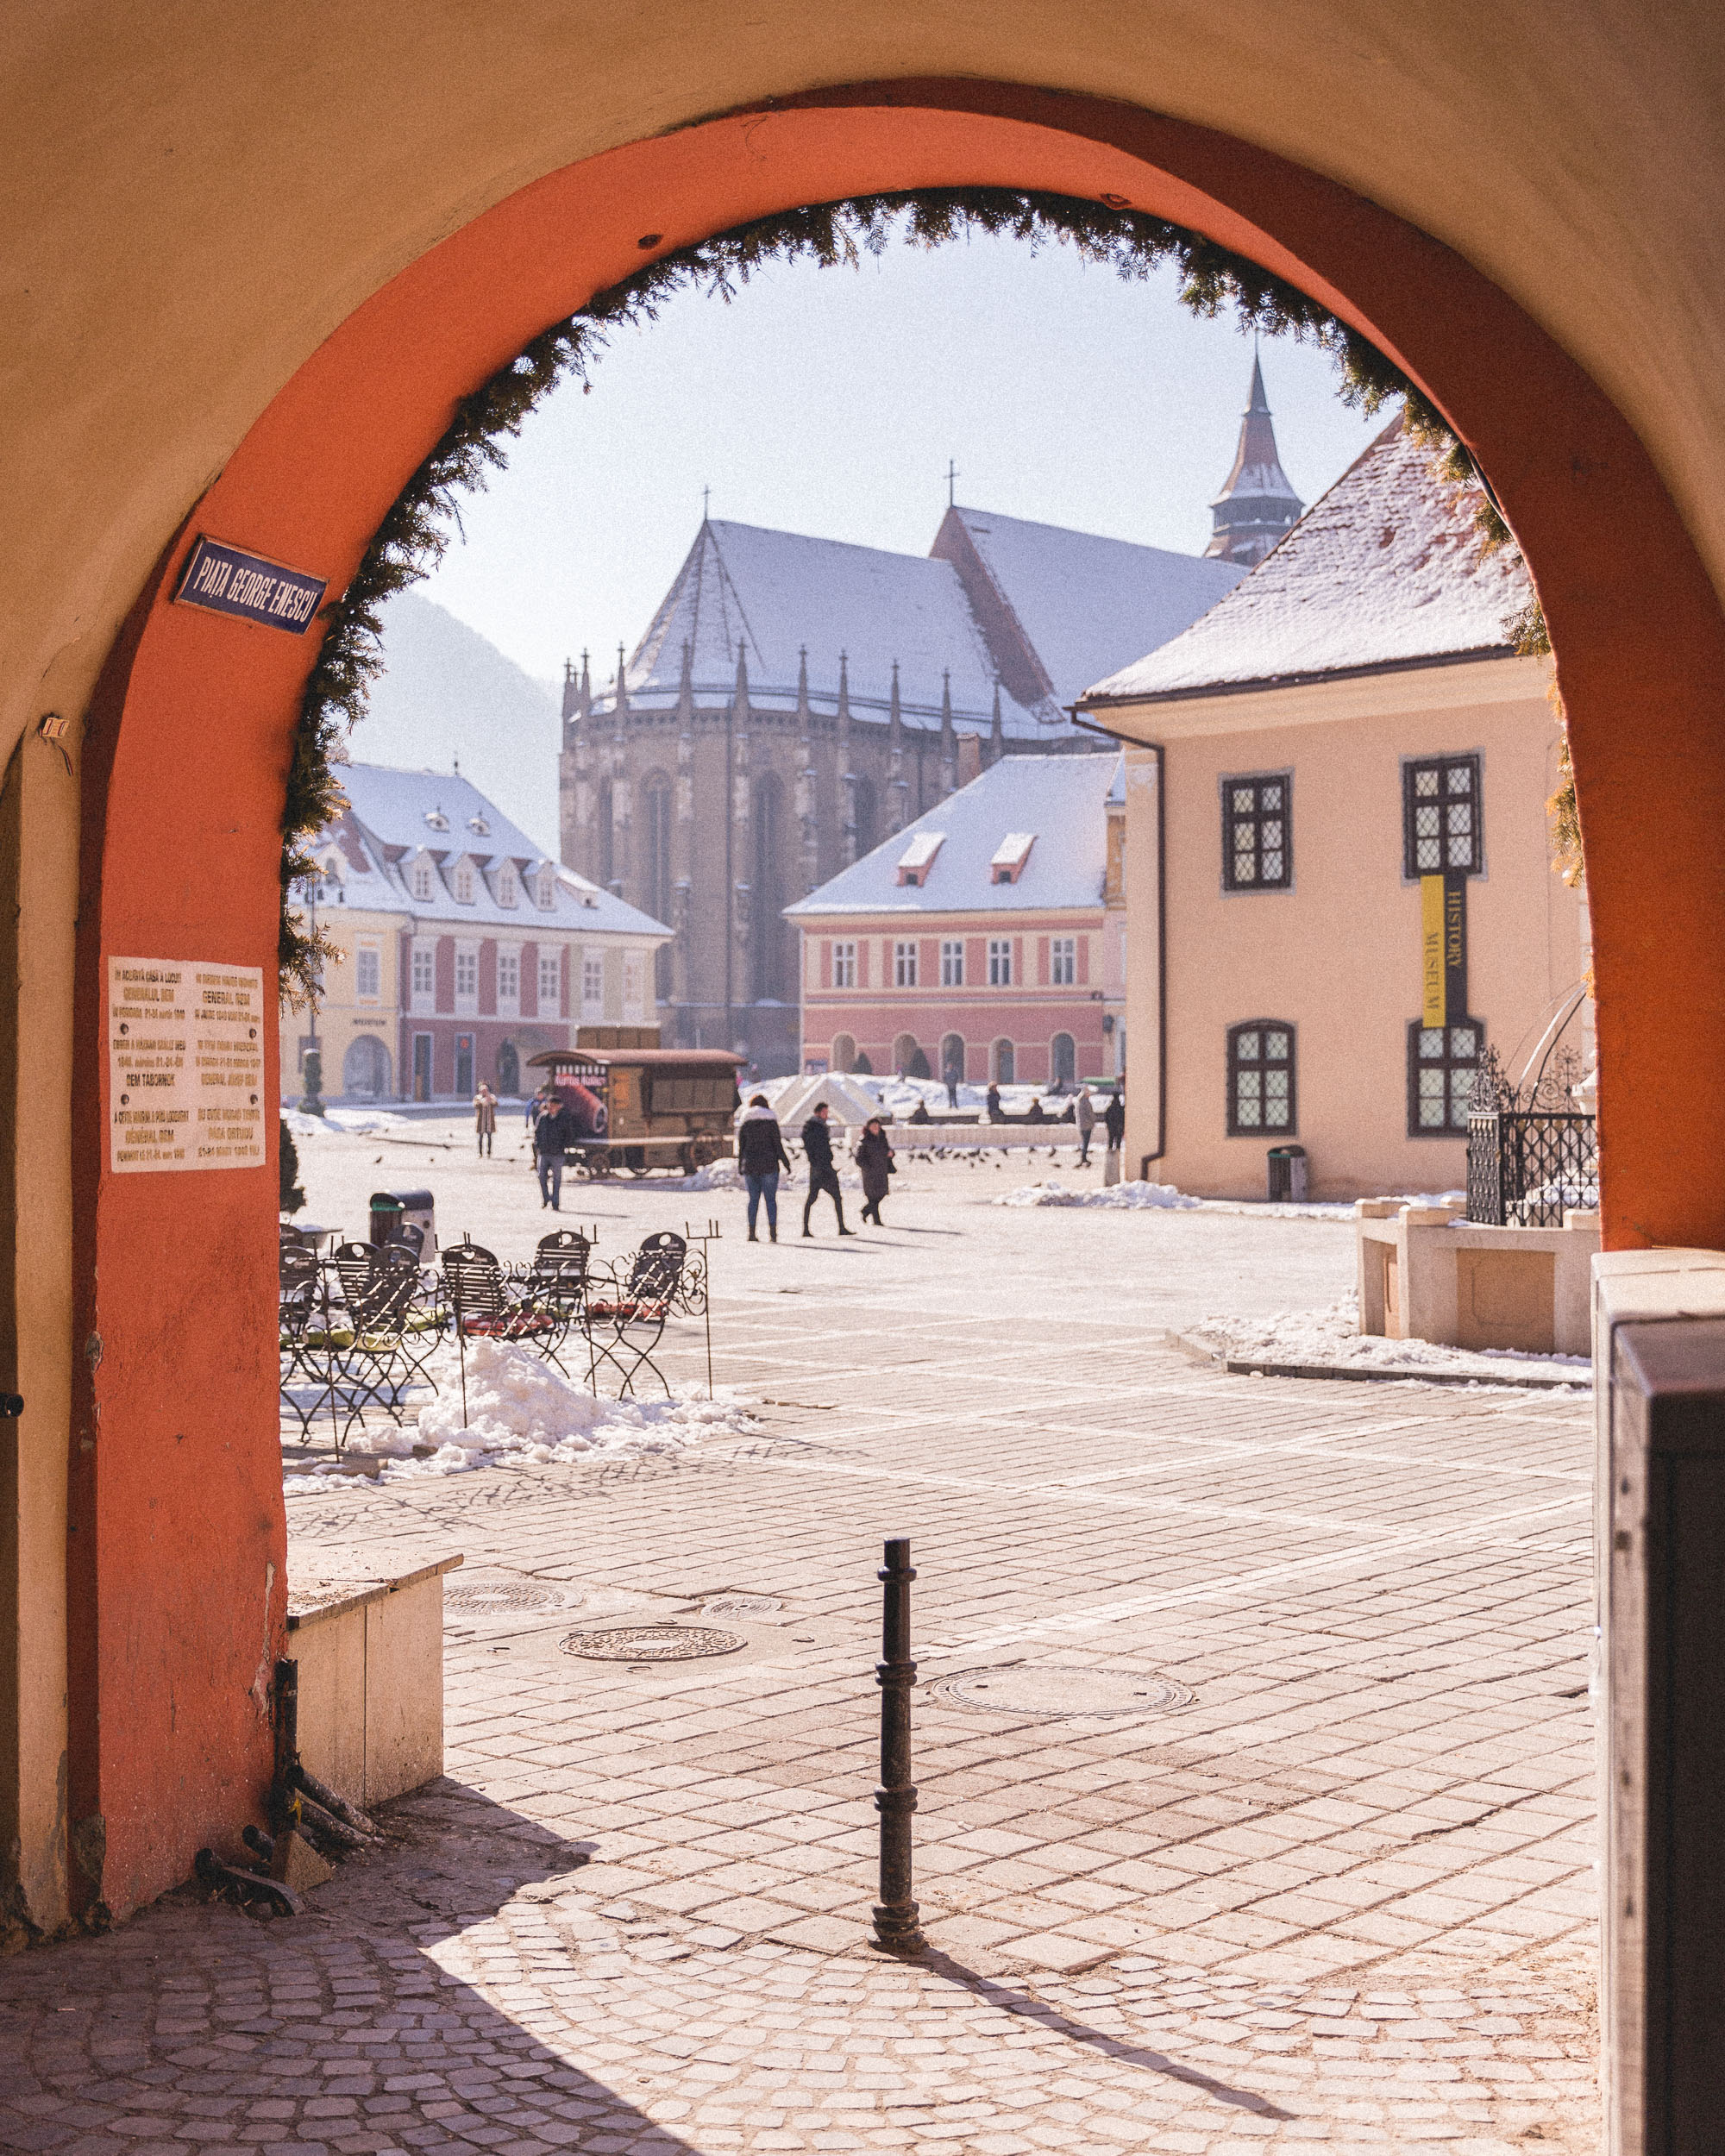 The pastel city of Brasov, Transylvania, Romania